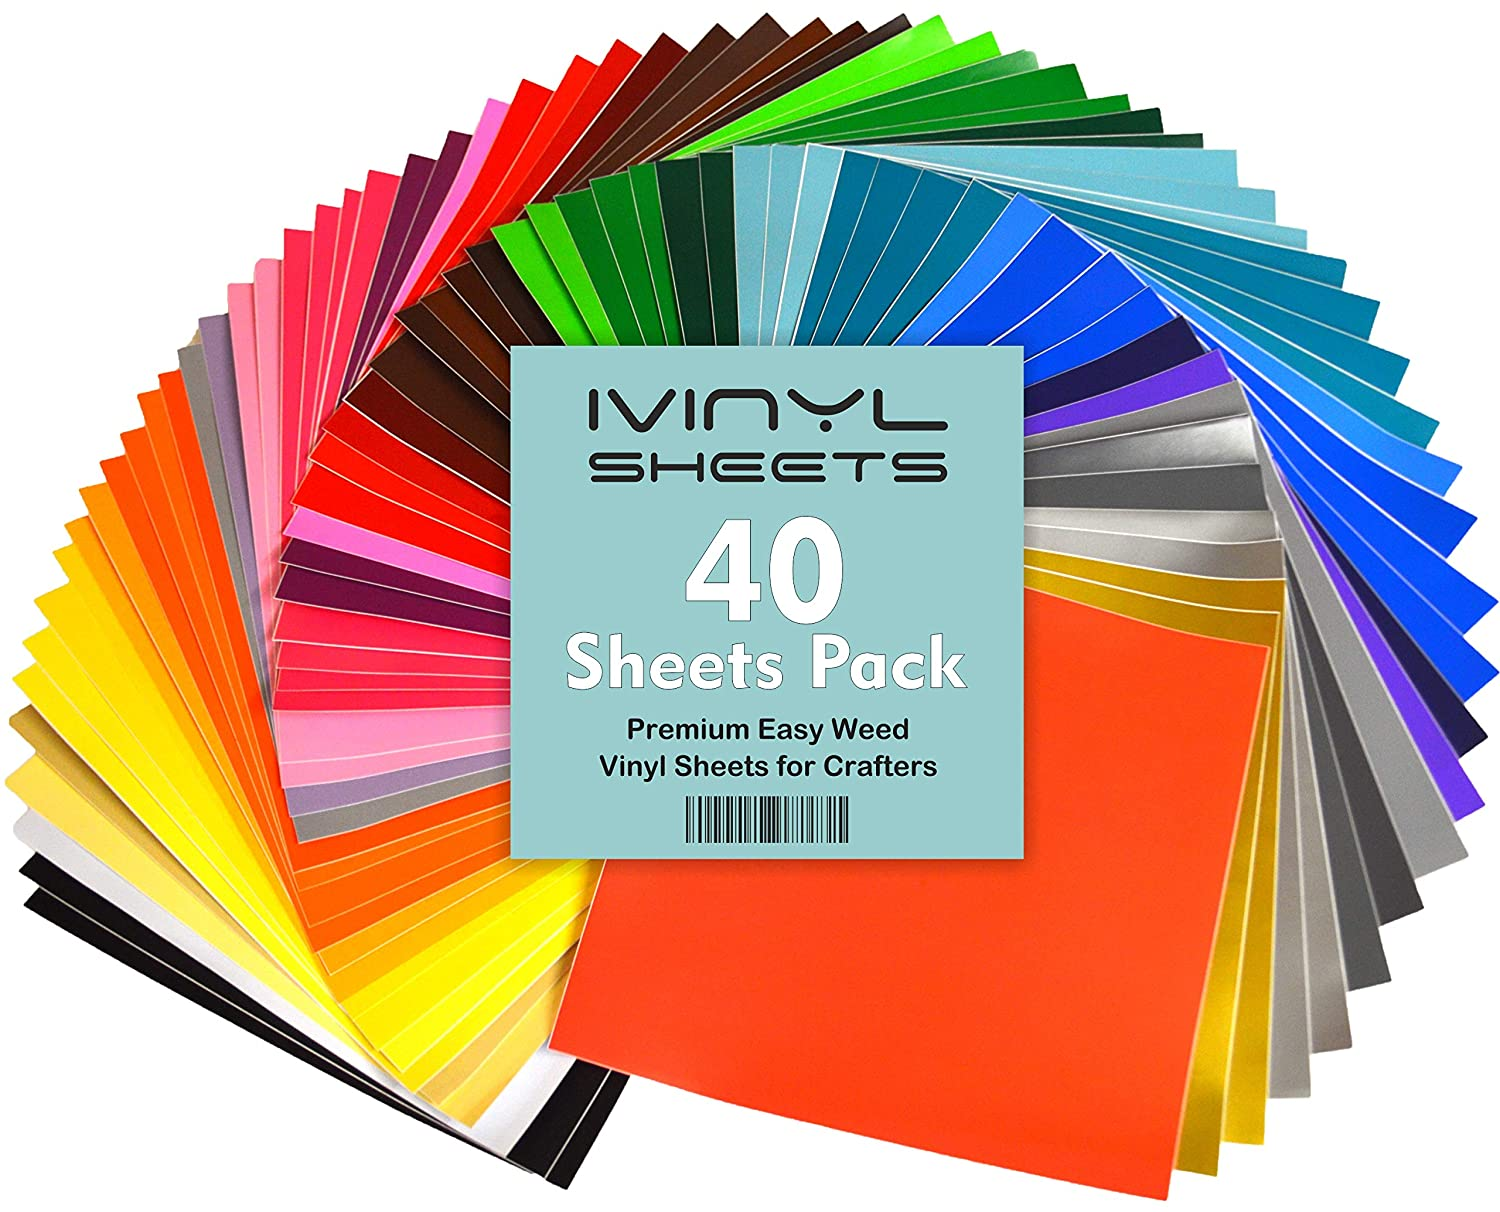 iVinyl - 40 Adhesive Sheets 12 x 12 Premium Permanent Self Adhesive Backed Vinyl Sheets - 40 Glossy & Matt Assorted Colors Sheets for Cricut, Craft Cutters, Silhouette Cameo & Crafting Machines Boreen 4336976728